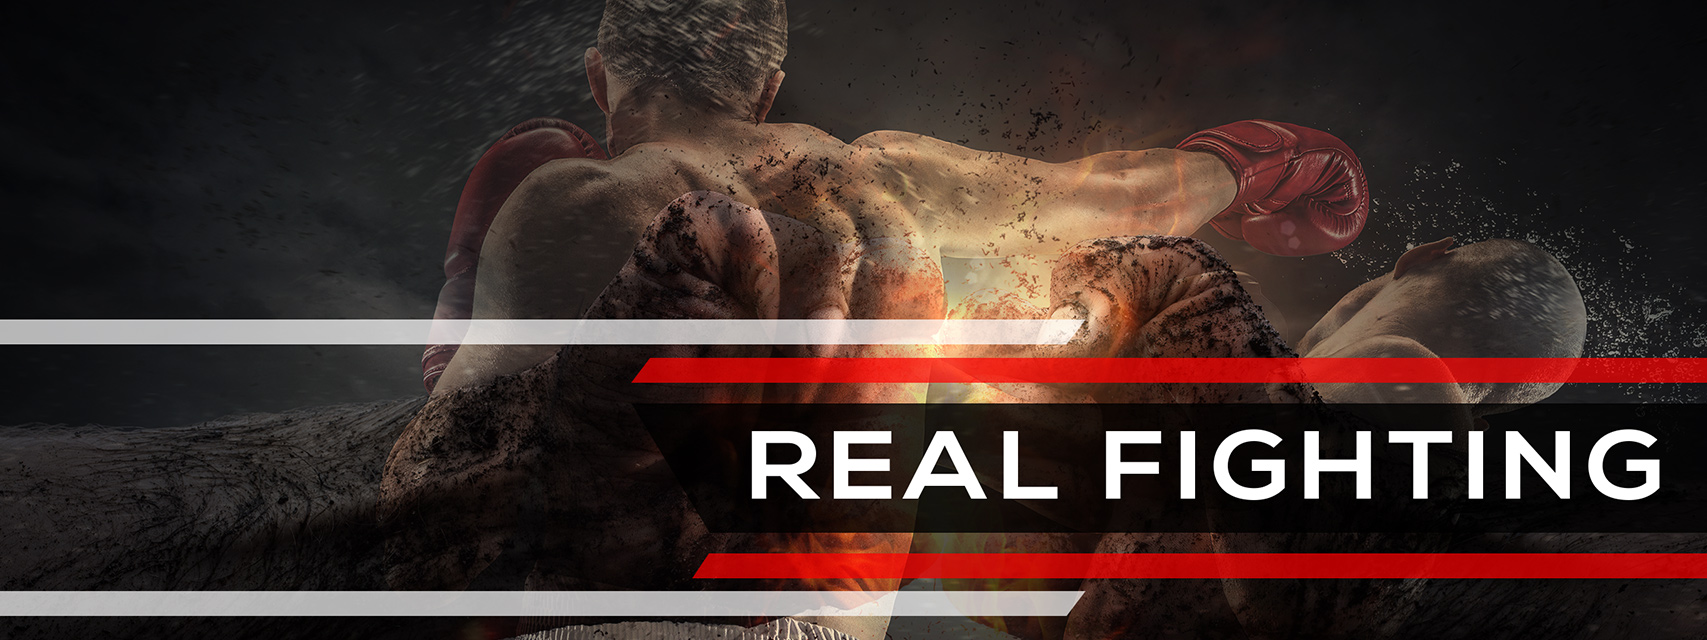 Real Fighting